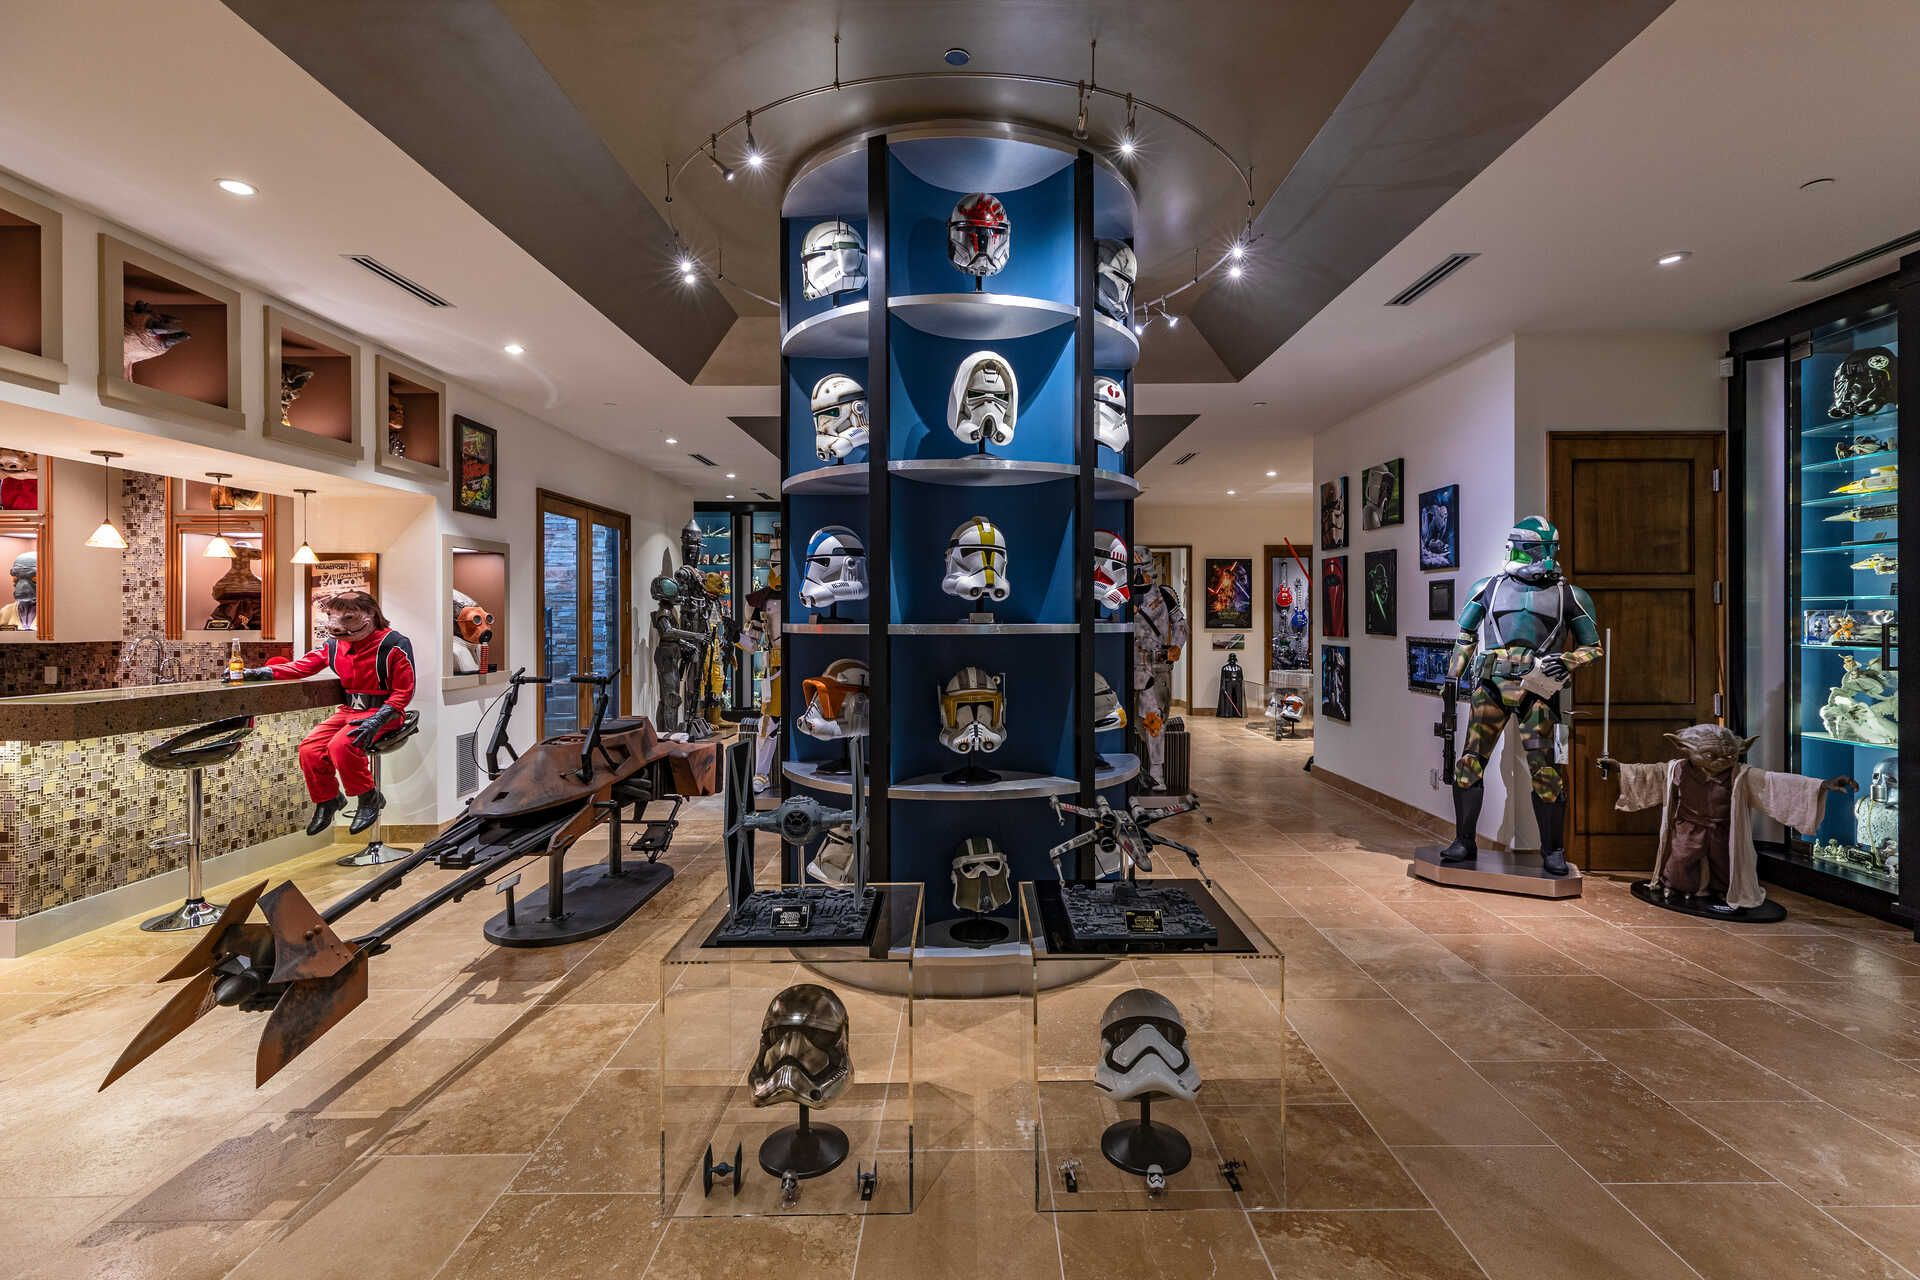 This Mansion Has an Entire Basement Dedicated to Star Wars, Equipped With 40 Life-Sized Character Figurines and a Cantina